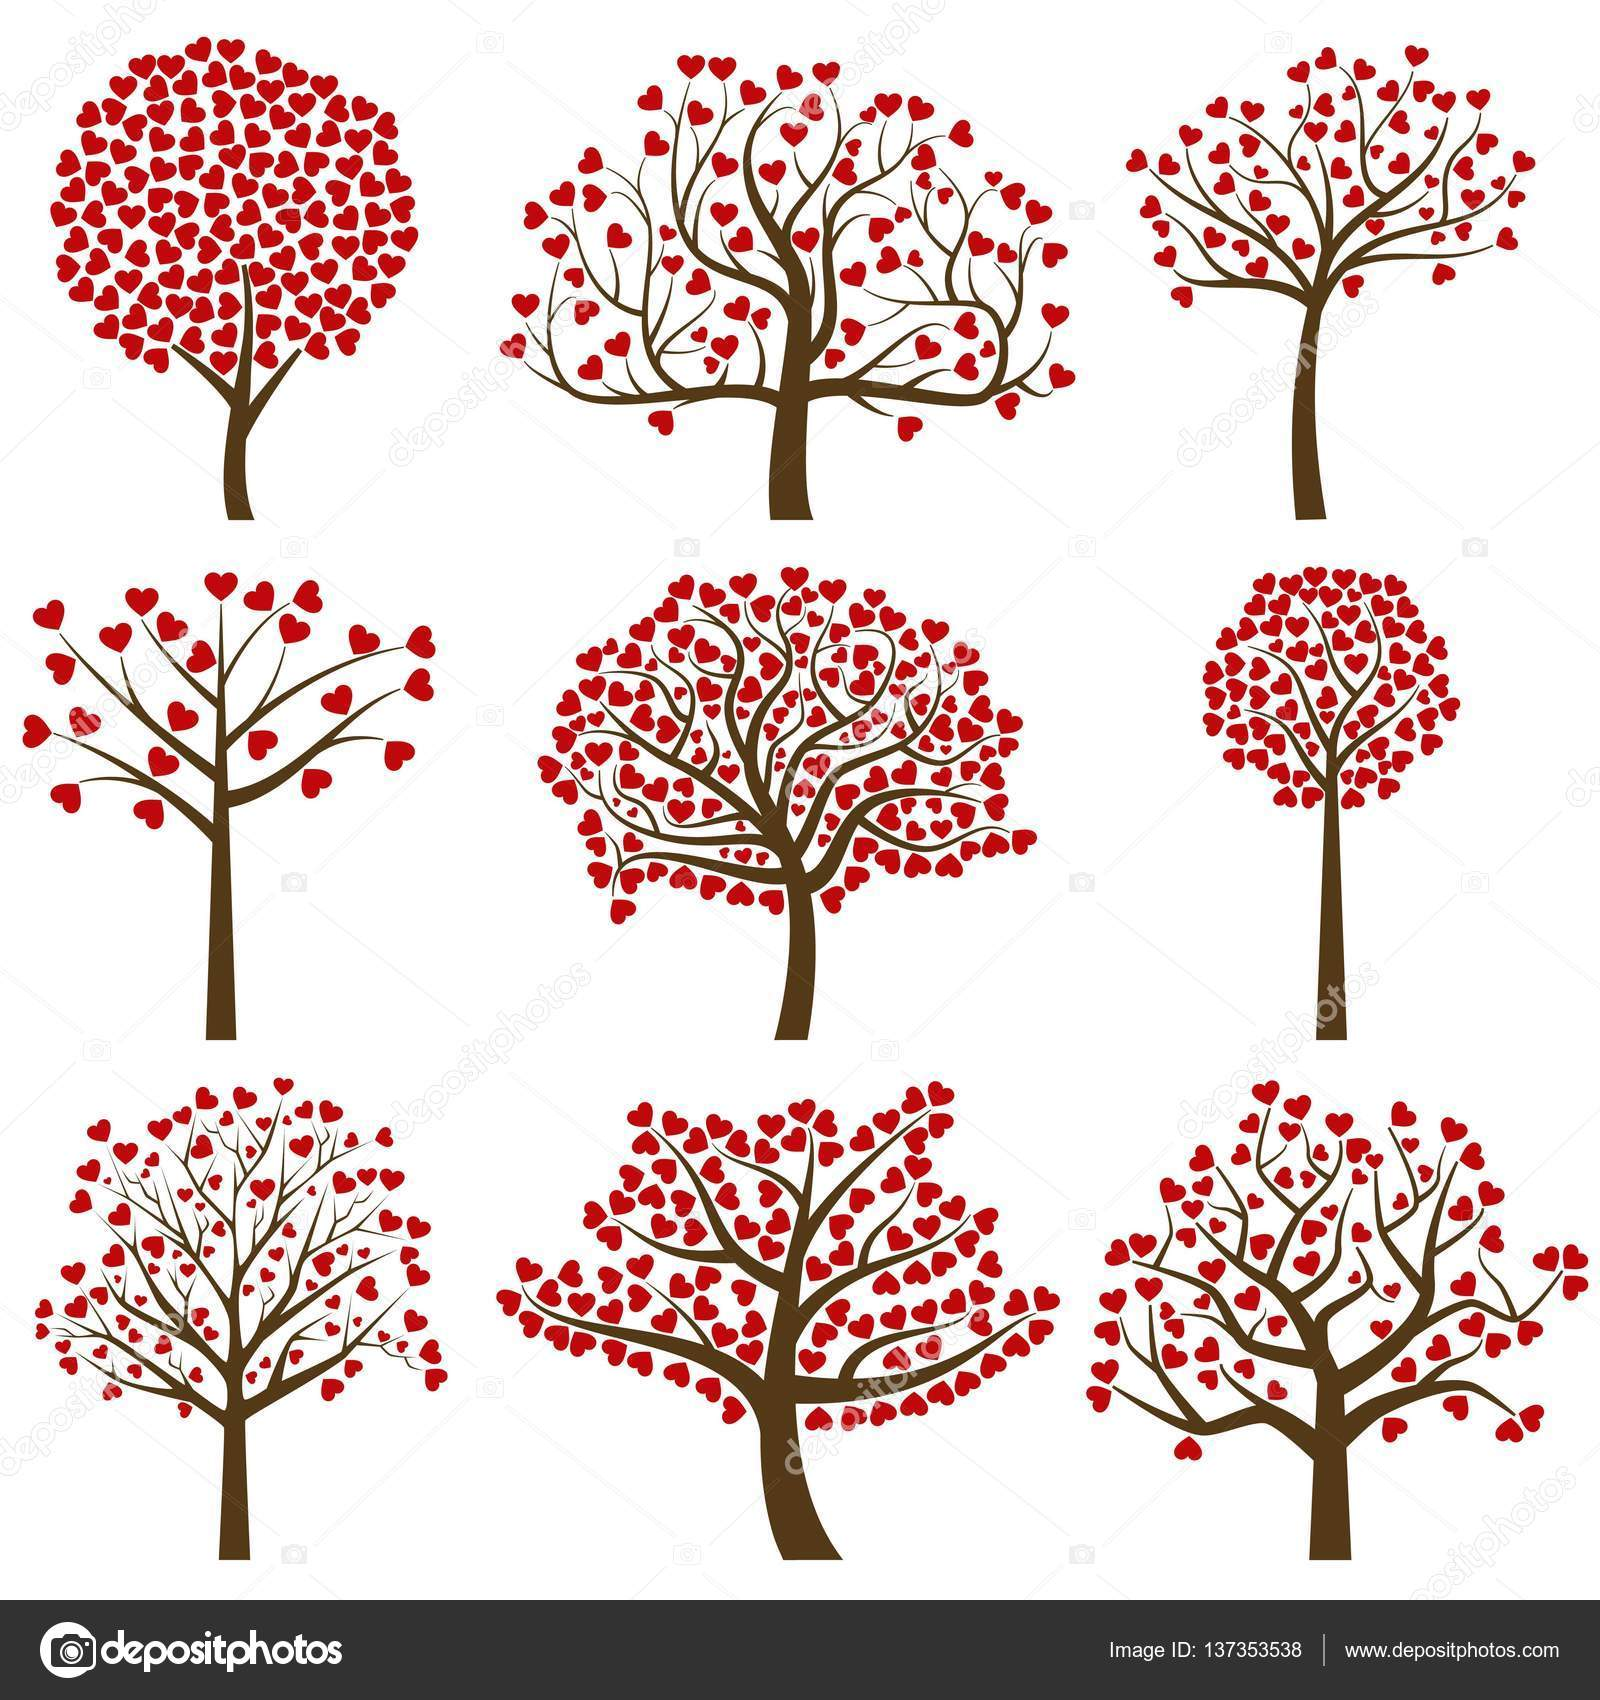 Valentines day tree silhouettes with heart shaped leaves vector valentines day tree silhouettes with heart shaped leaves vector format stock vector mightylinksfo